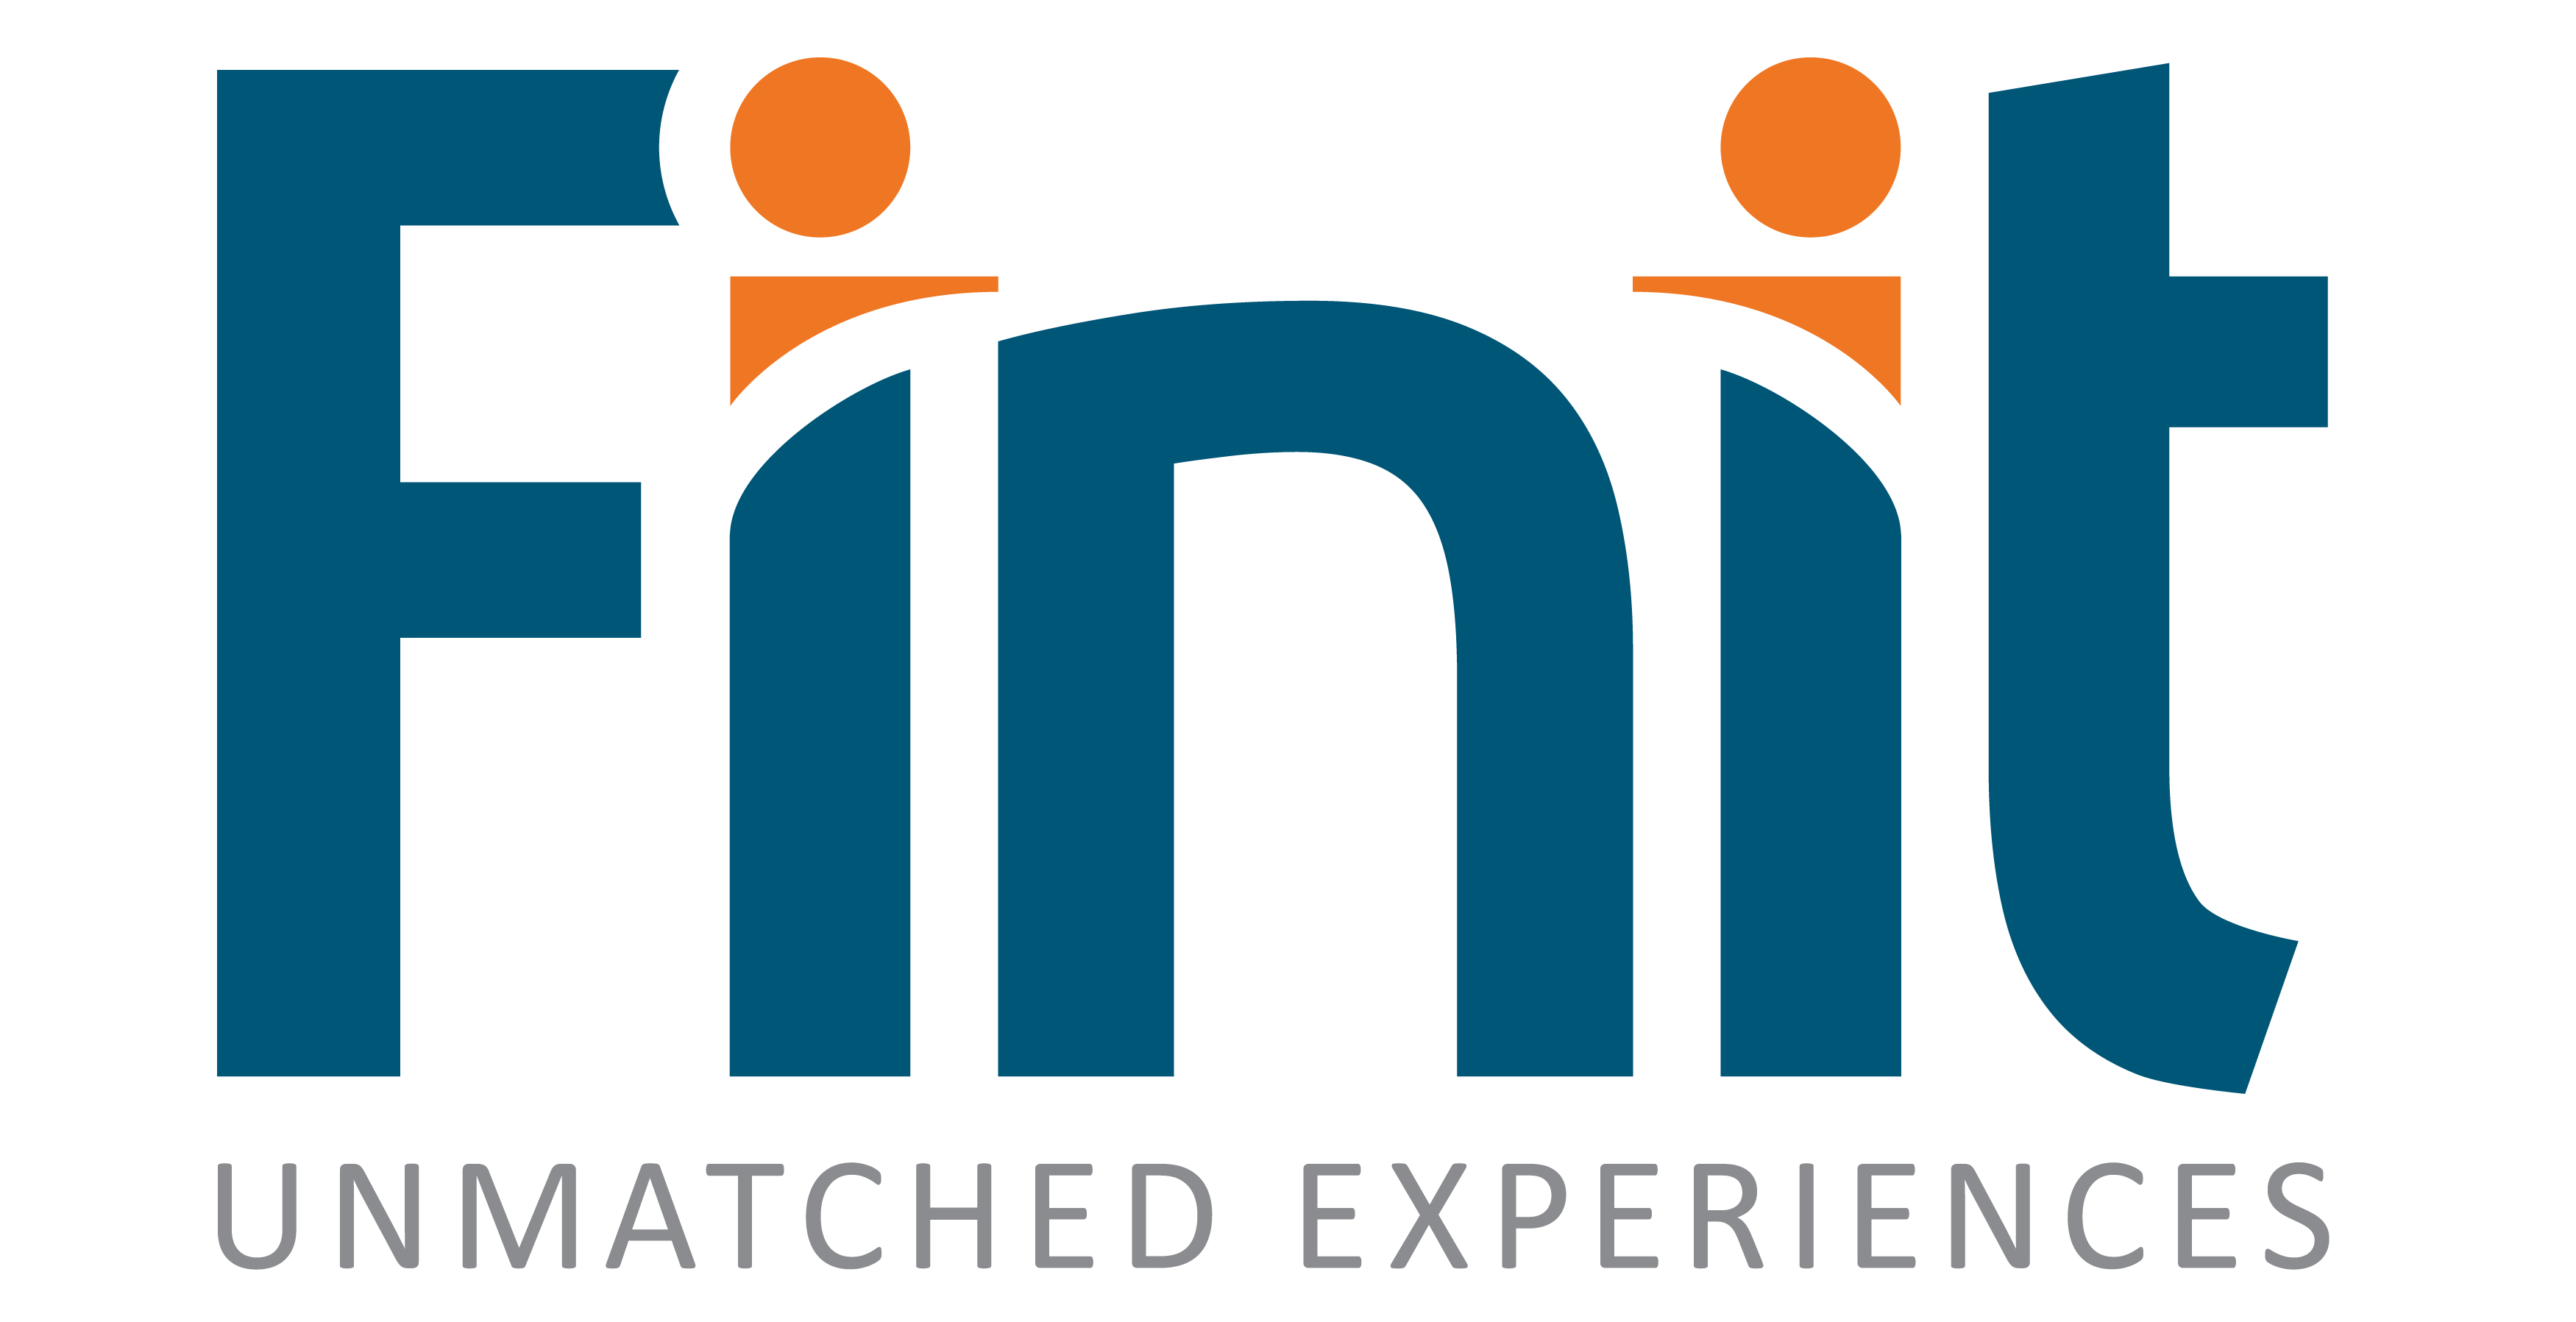 Finit, the Leading OneStream Software Diamond Partner, Delivers 200+ OneStream Project Successes